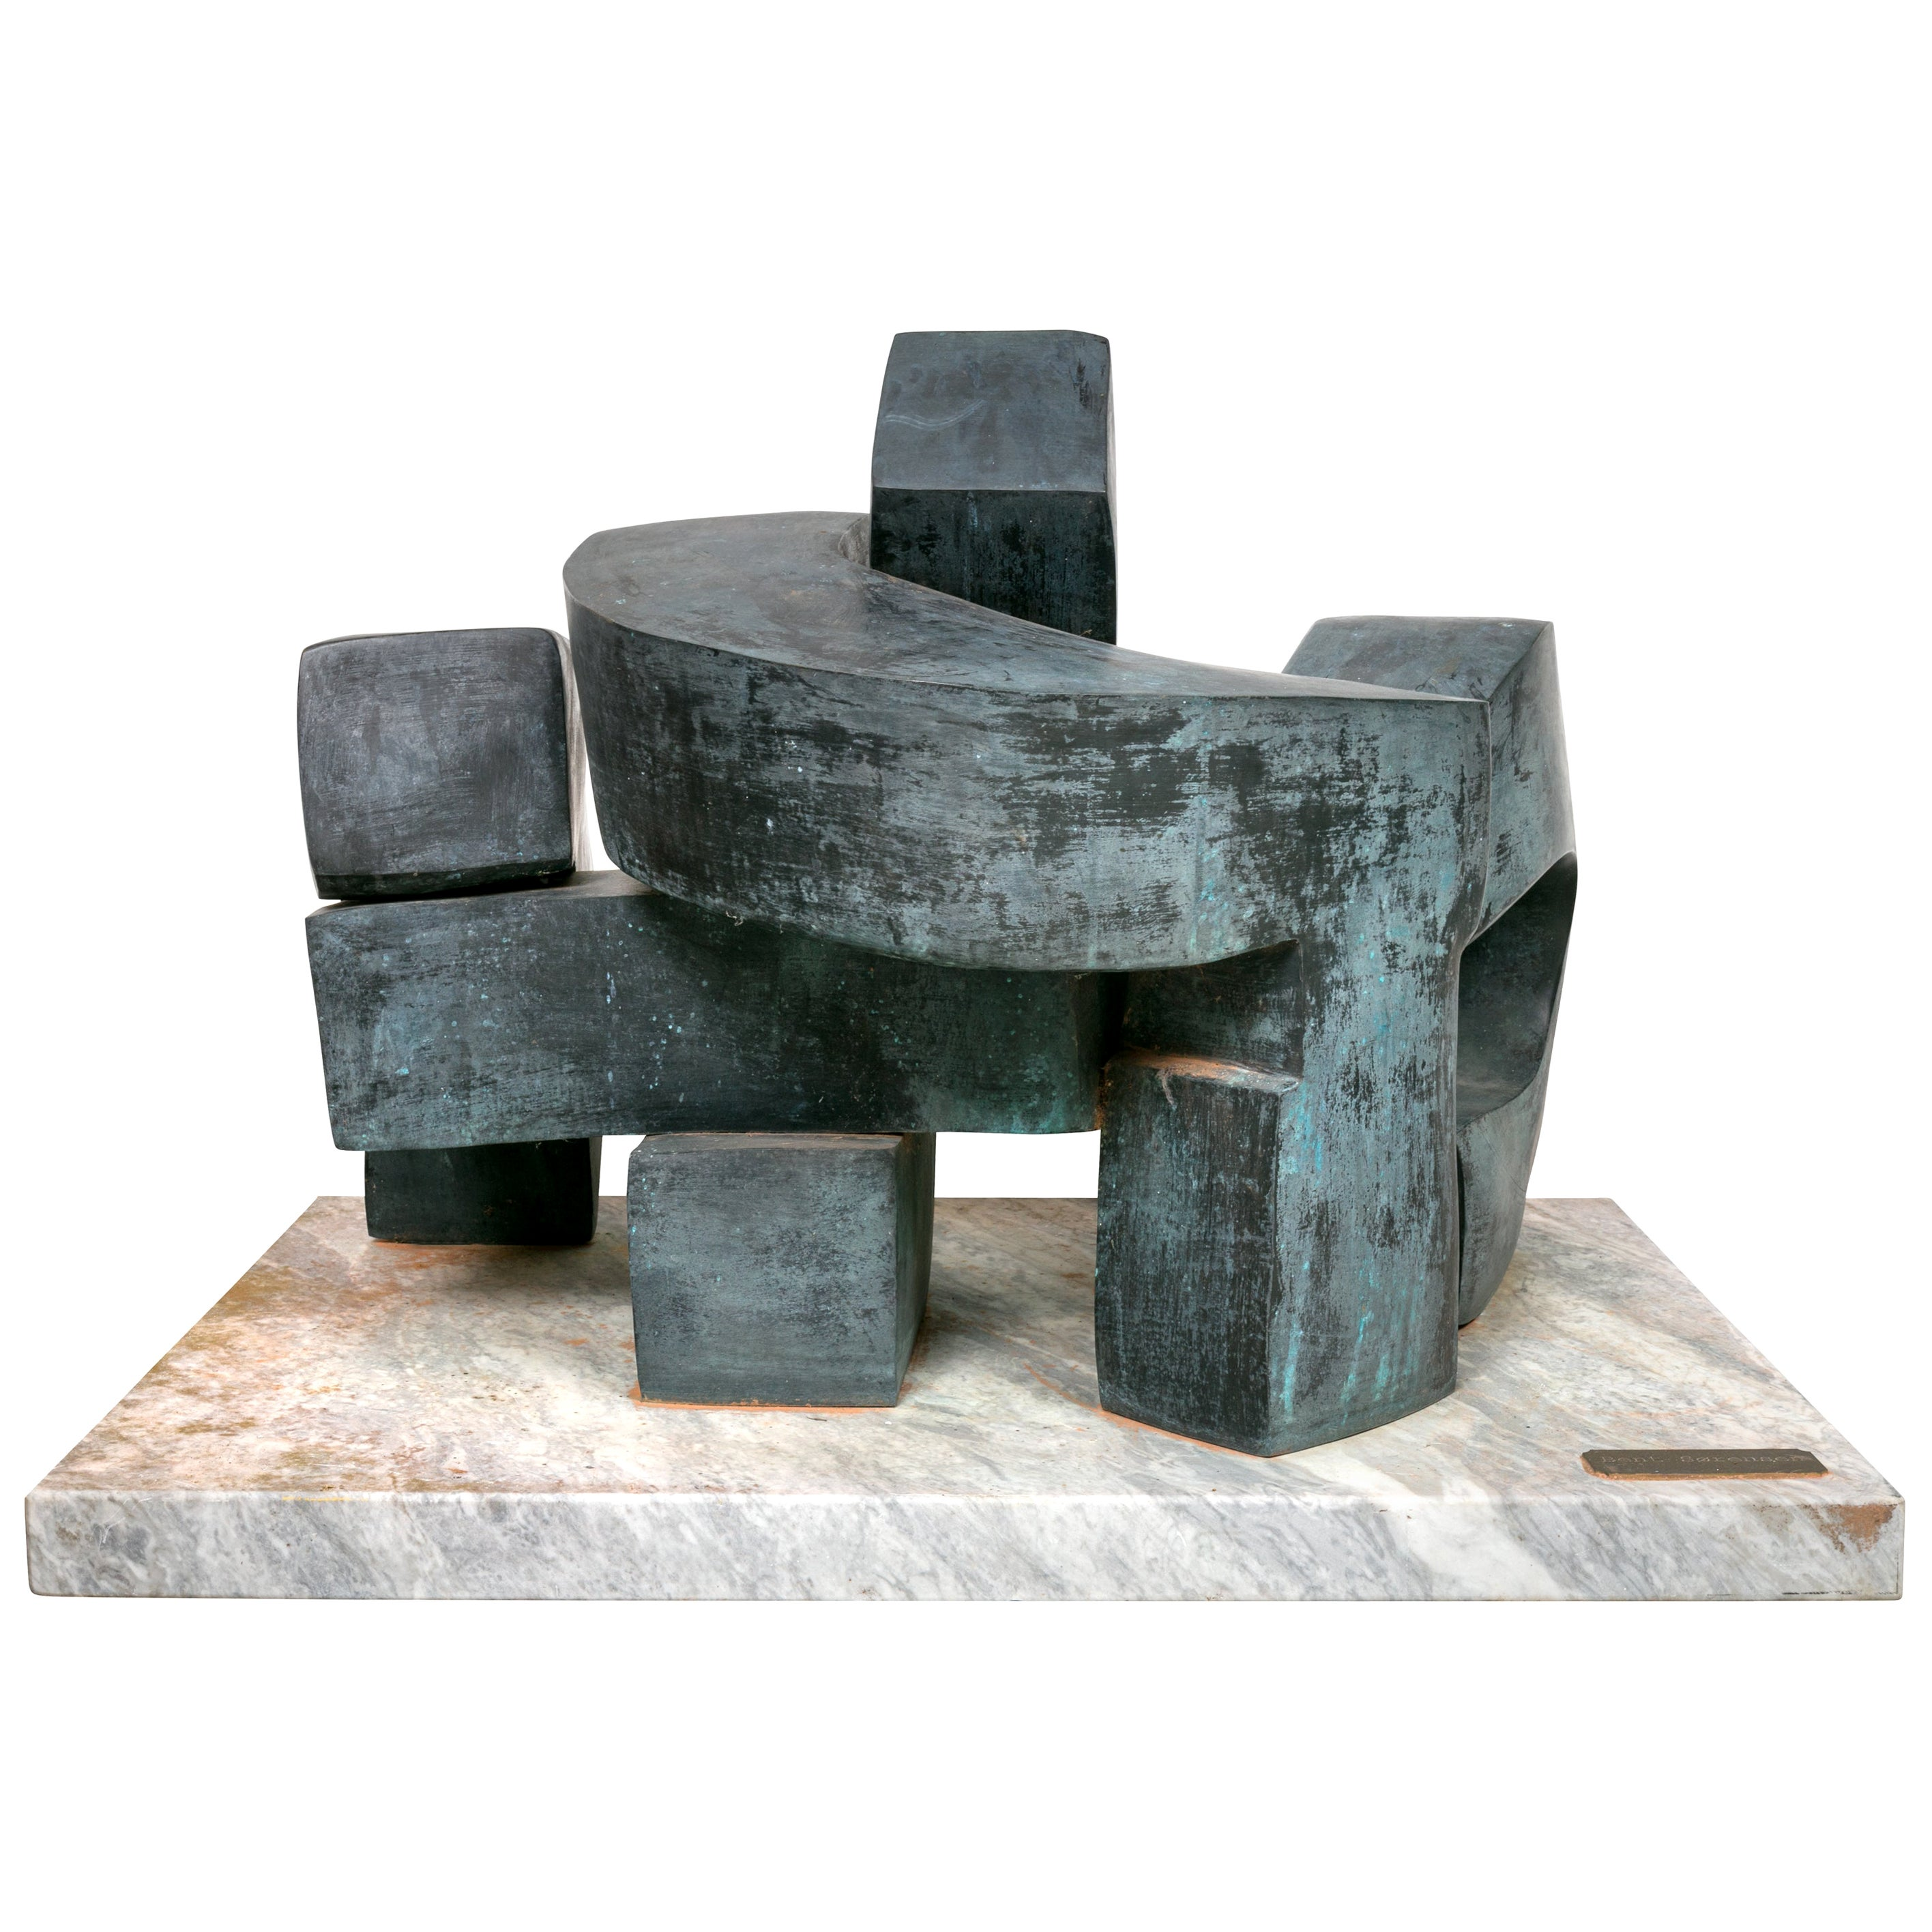 Bent Sorensen Bronze Abstract Sculpture, Denmark 1970s